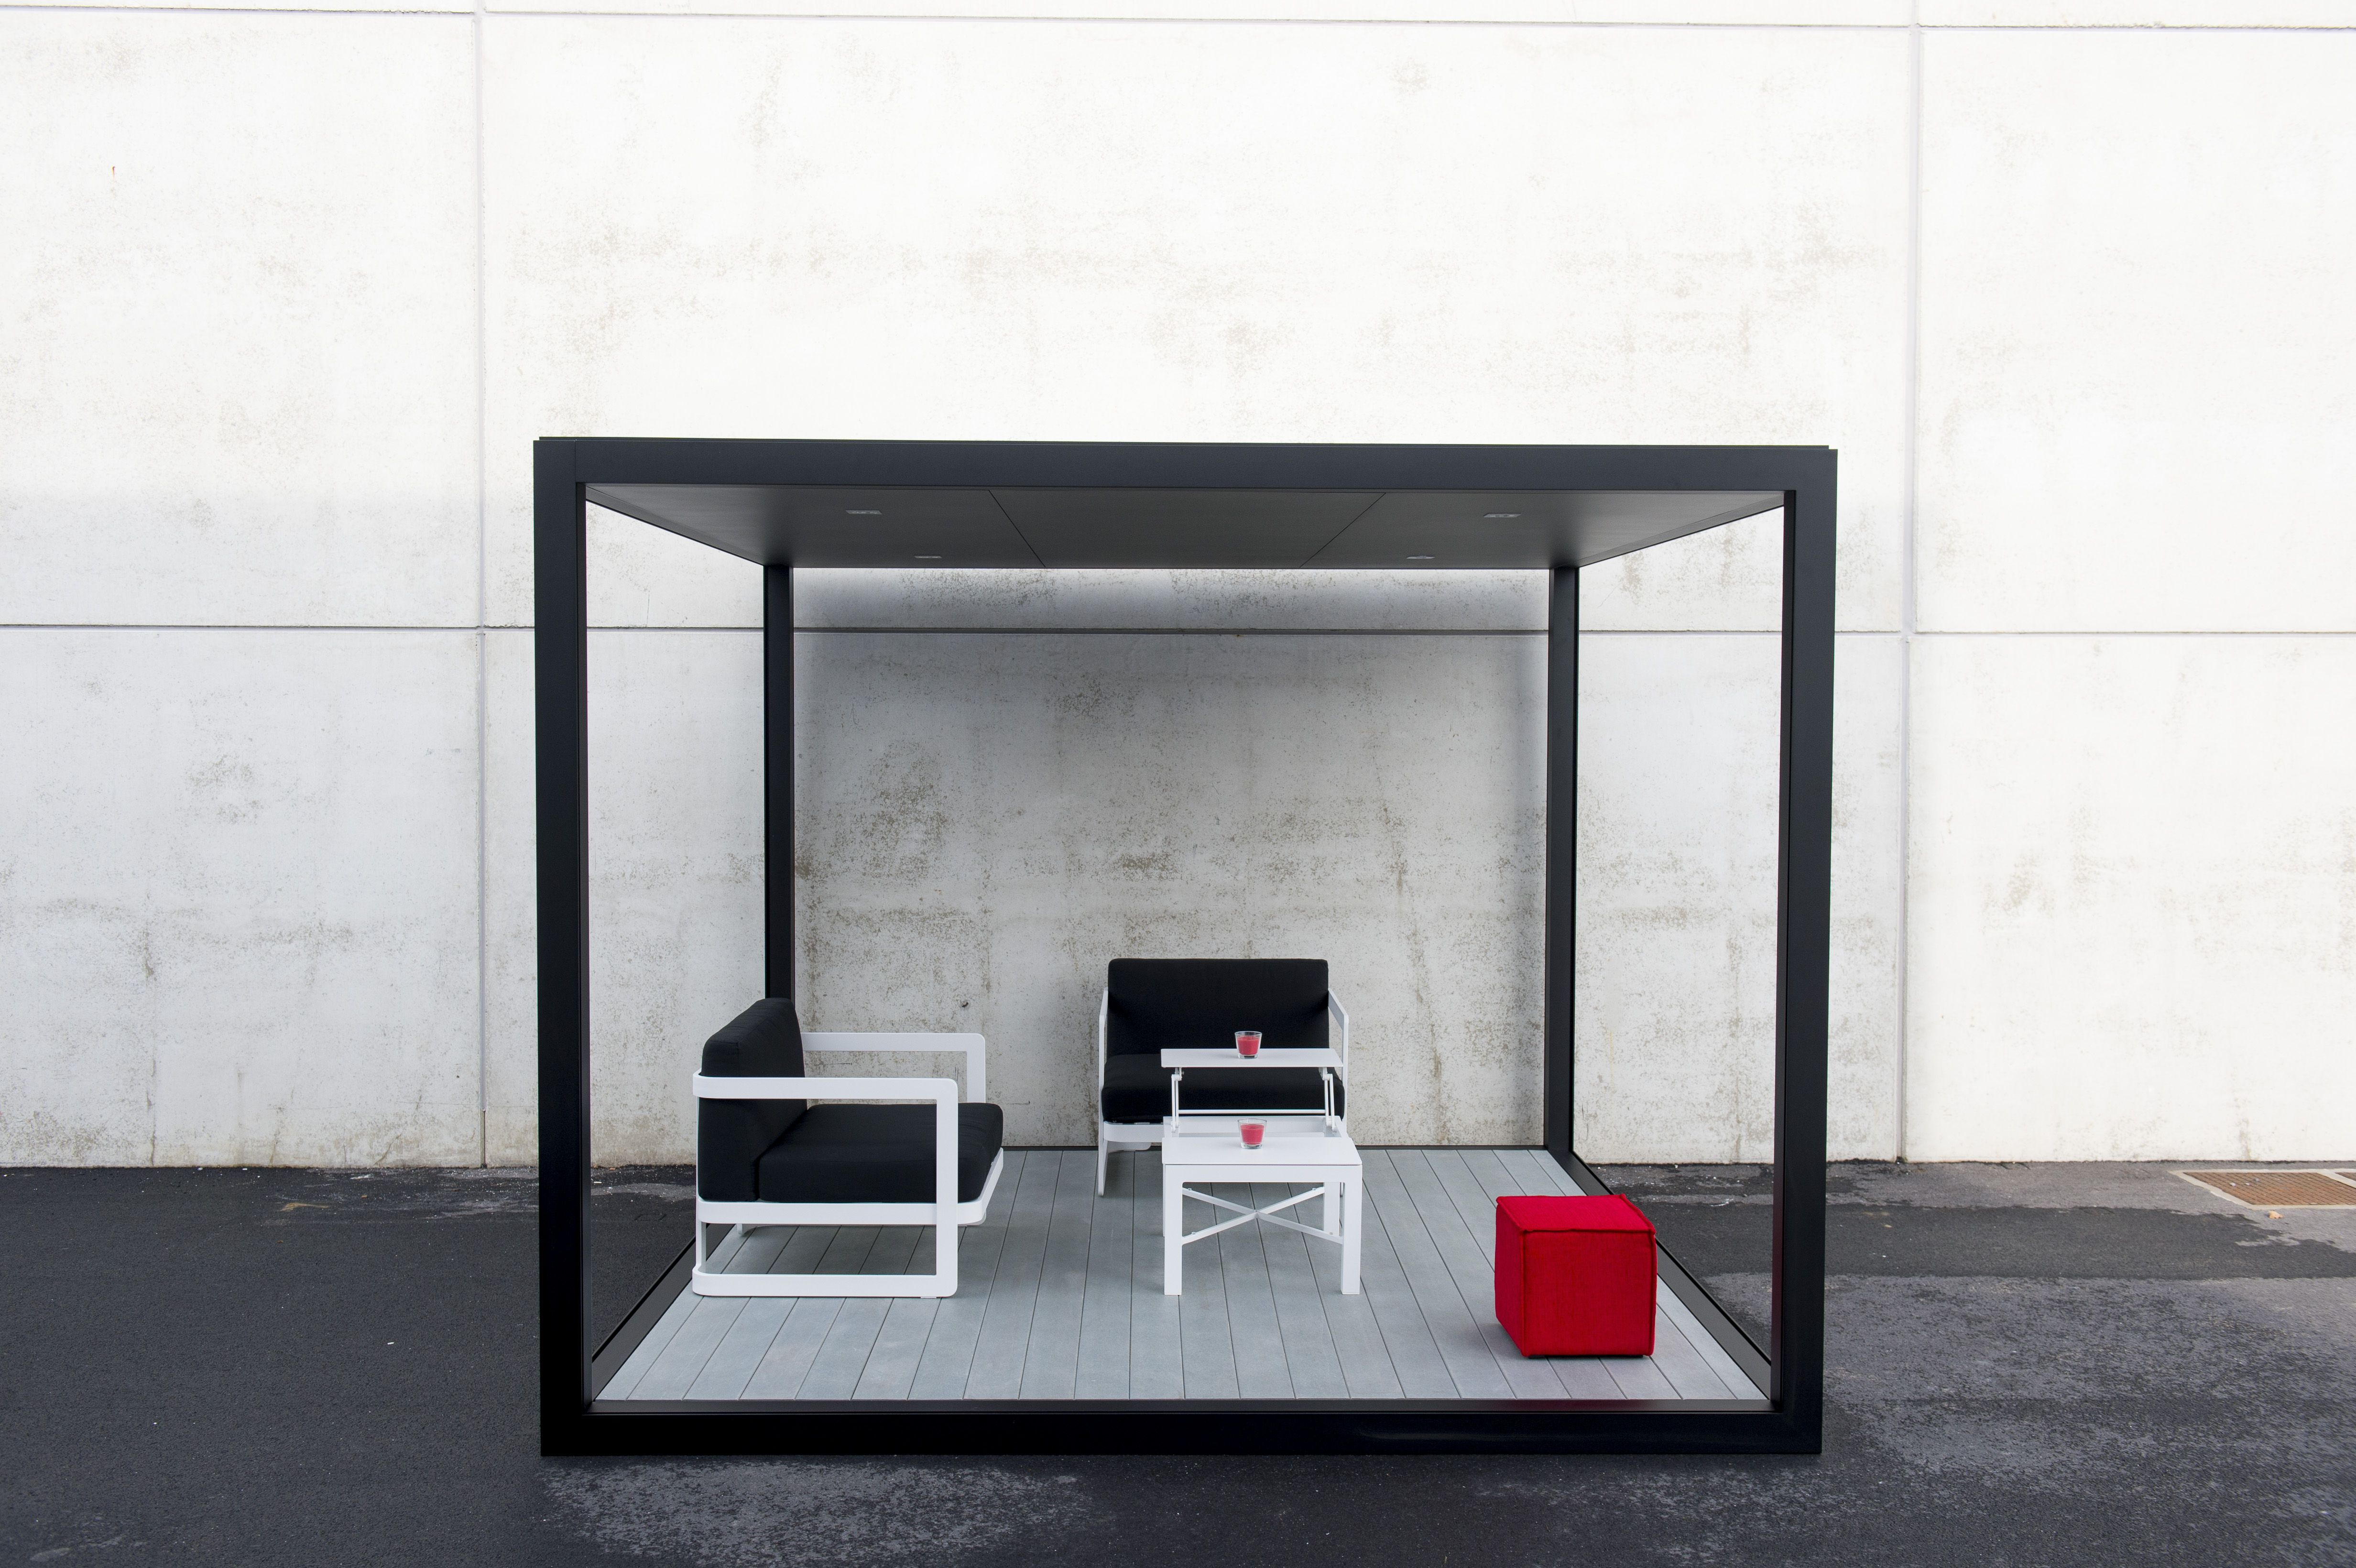 Qube Van Praet Unique Exclusive And Versatile Design Provides Extra Space Indoors Or Outdoors Can Be Used As An Office Or In The Backyard For Garden Par